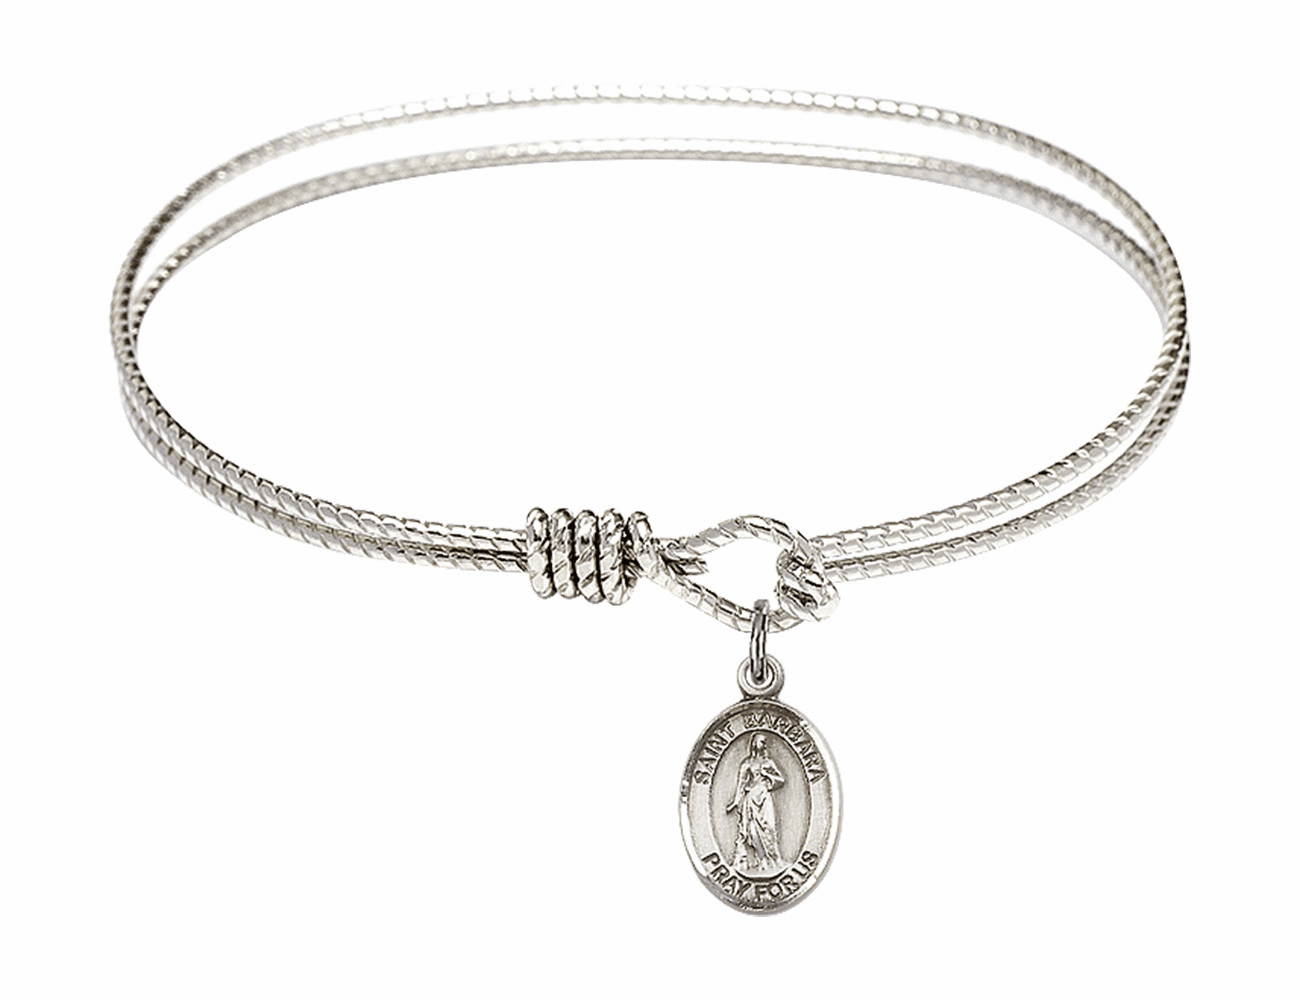 St Barbara Textured Bangle w/Sterling Charm Bracelet by Bliss